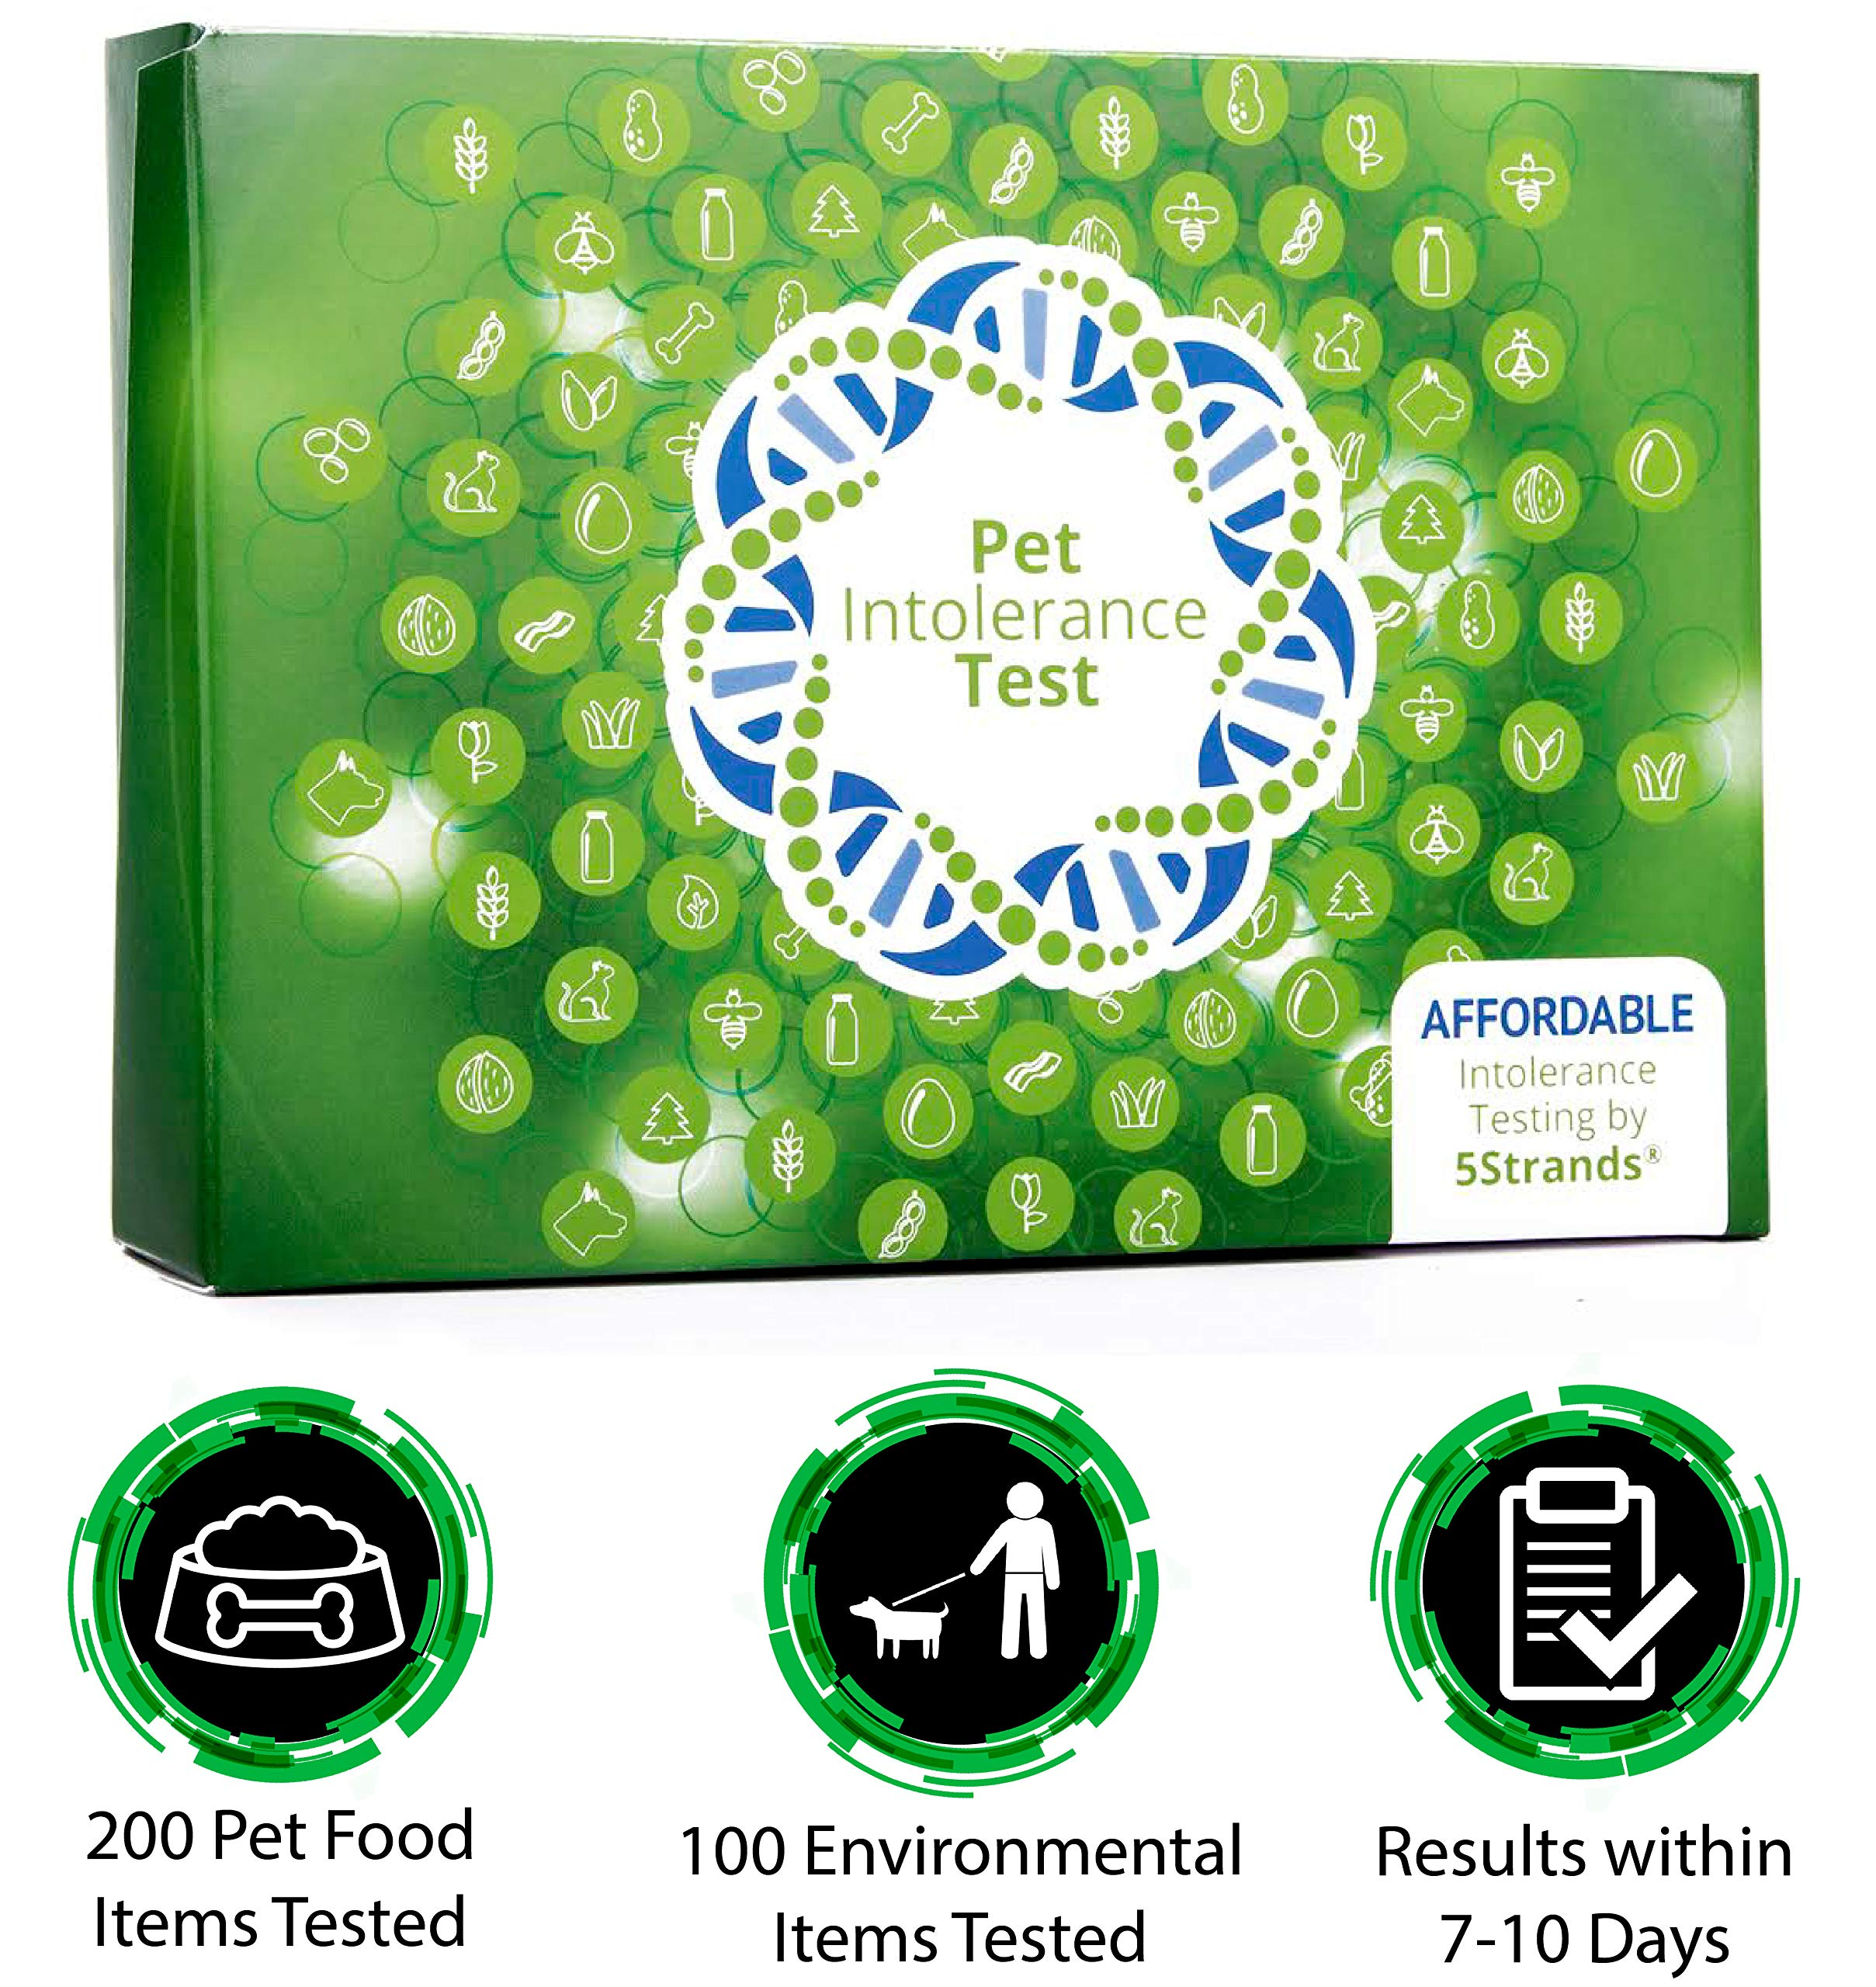 5Strands | Affordable Pet Test | 200 Food Ingredients & 100 Environmental Items Tested Cat & Dog | Allergy Sensitivity & Intolerance at Home Collection Test Kit | Hair Analysis | (Pet 300) by 5Strands